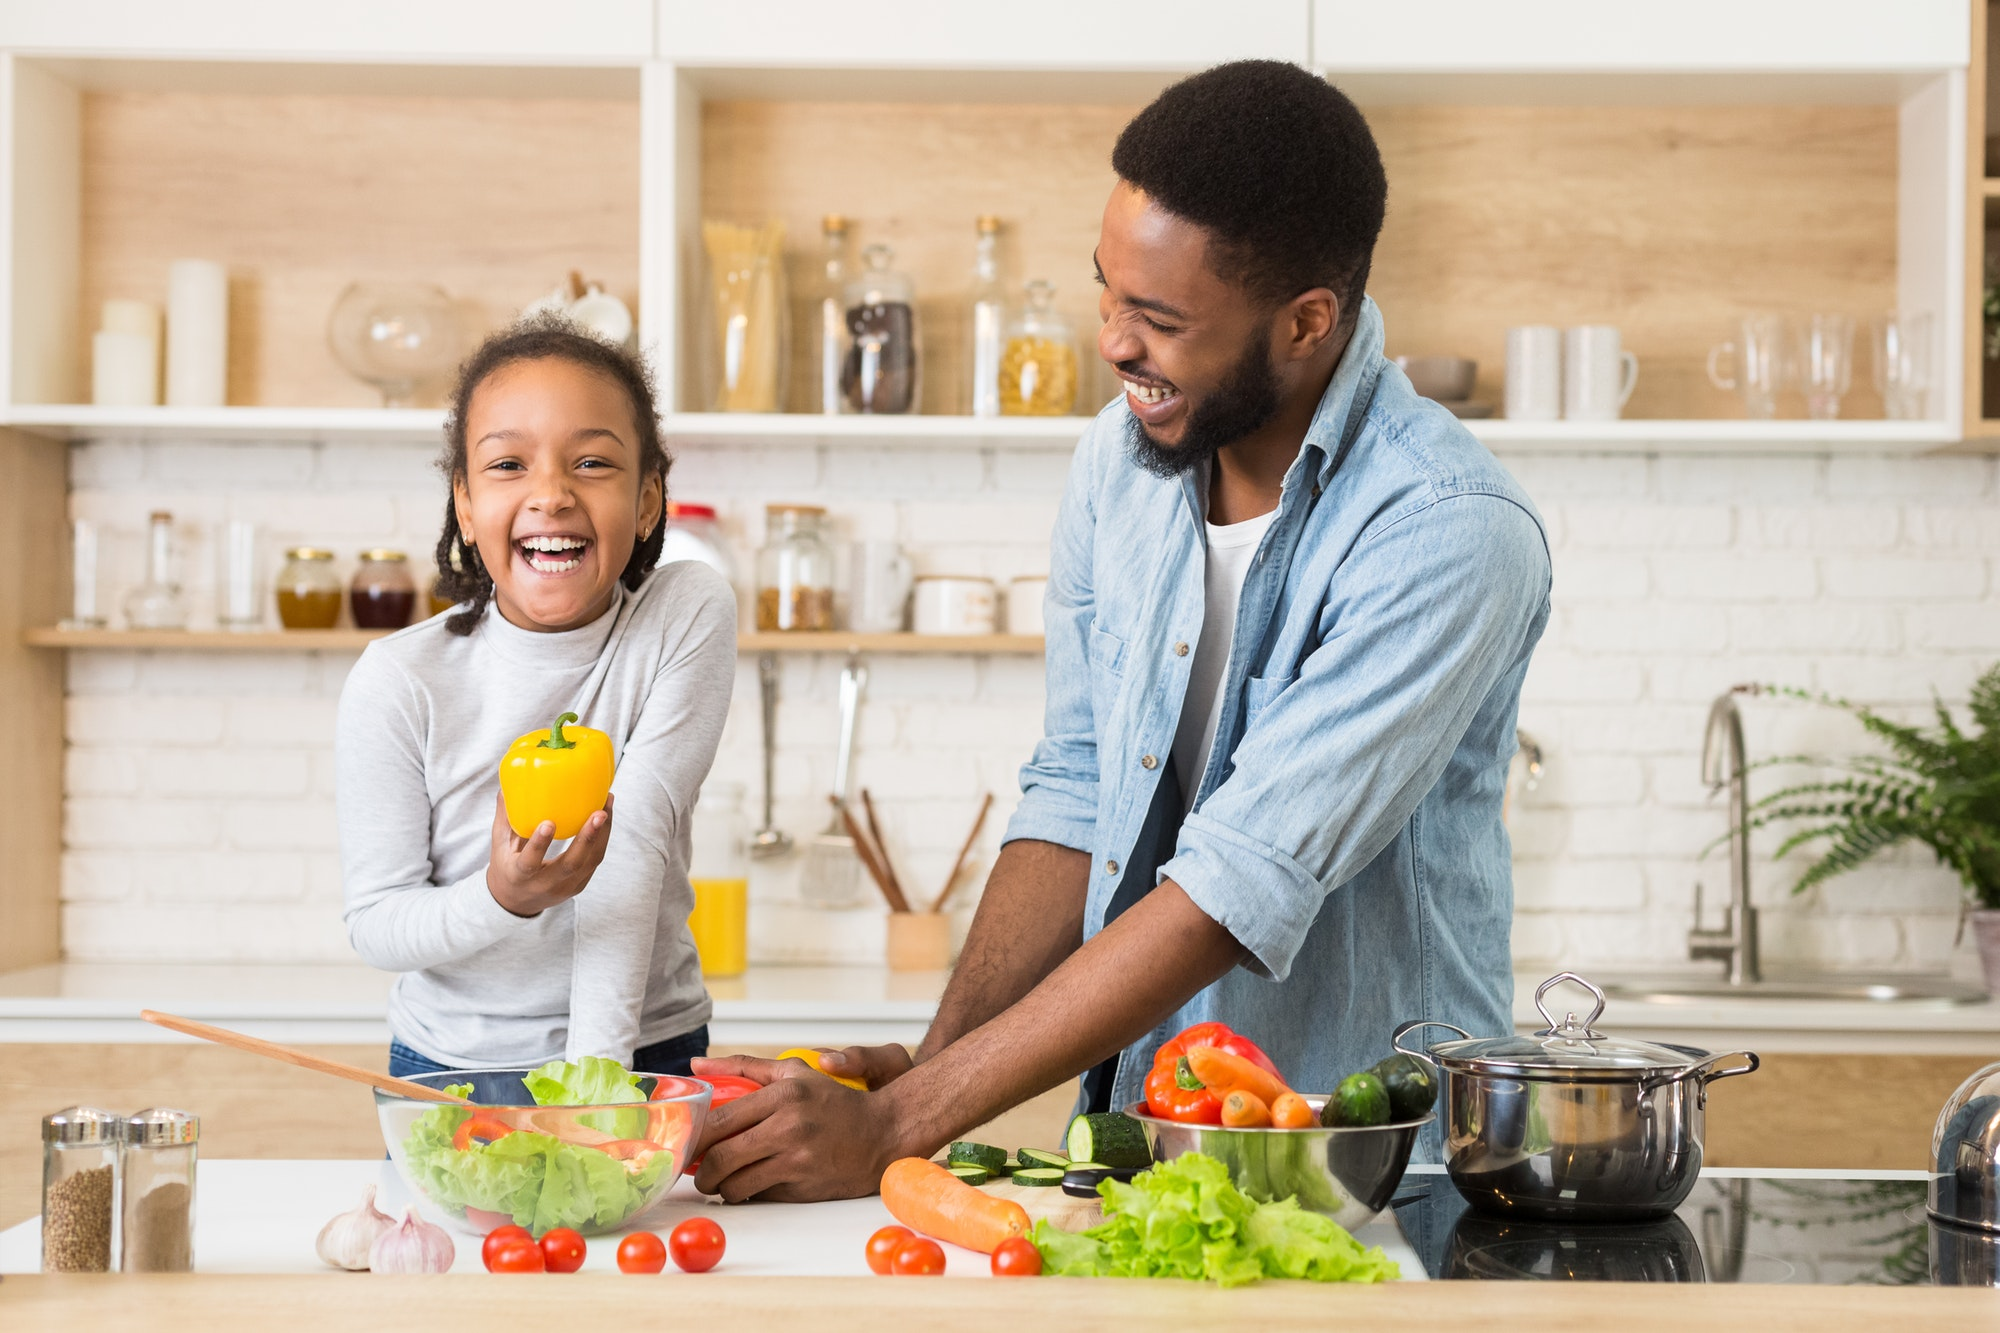 Cheerful afro girl holding pepper while helping father cooking dinner